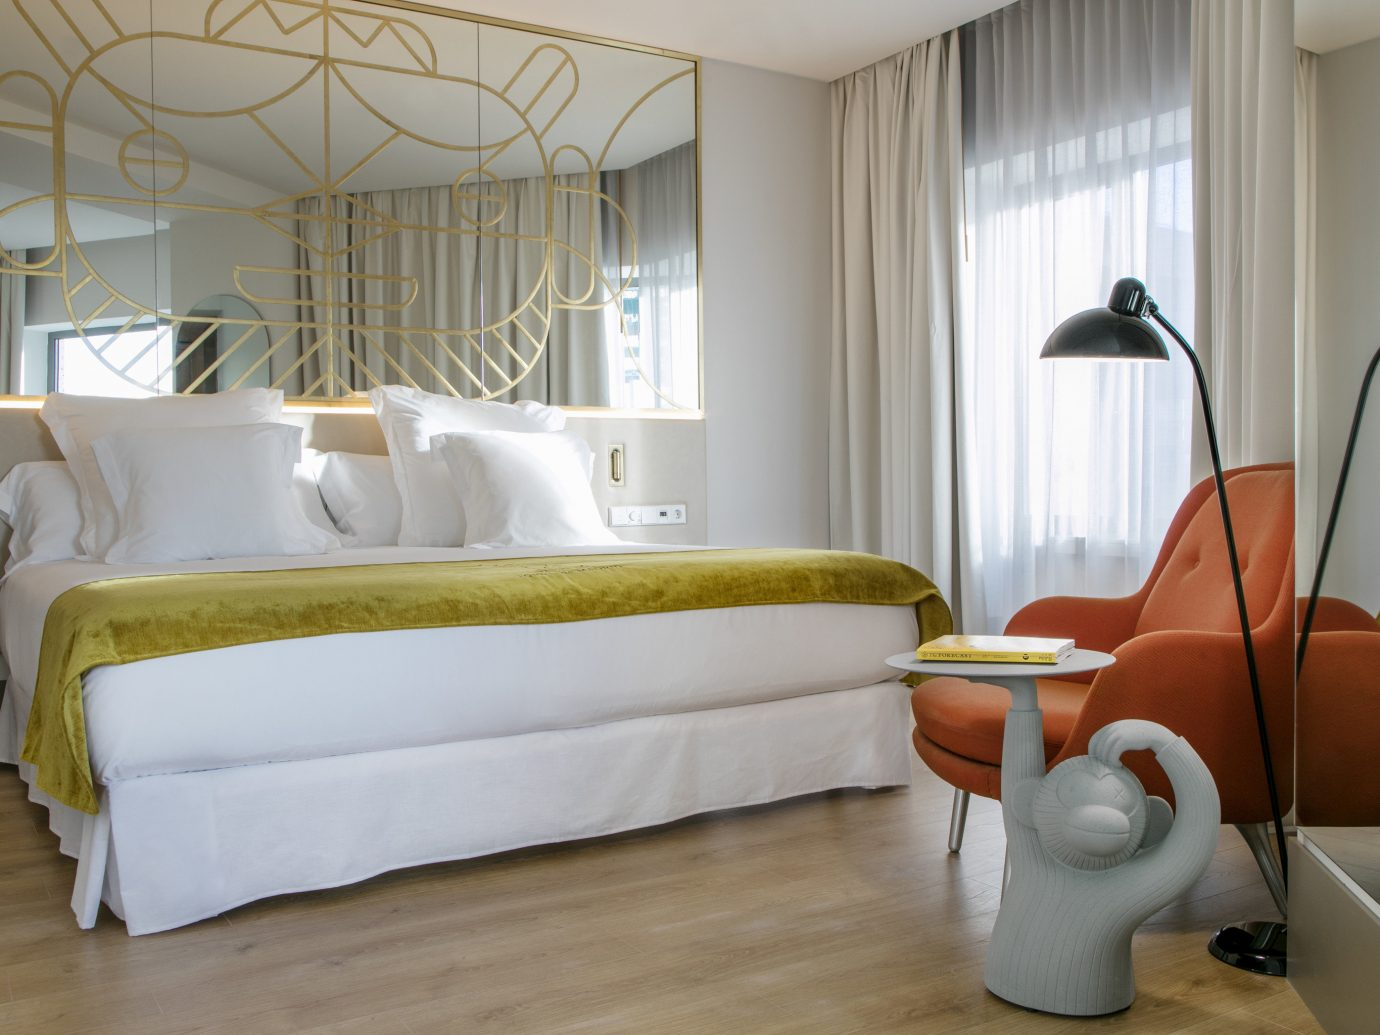 Hotels Madrid Spain indoor floor wall room interior design window Suite Architecture bed frame Bedroom ceiling home furniture window treatment real estate bed bed sheet window covering flooring interior designer hotel living room curtain